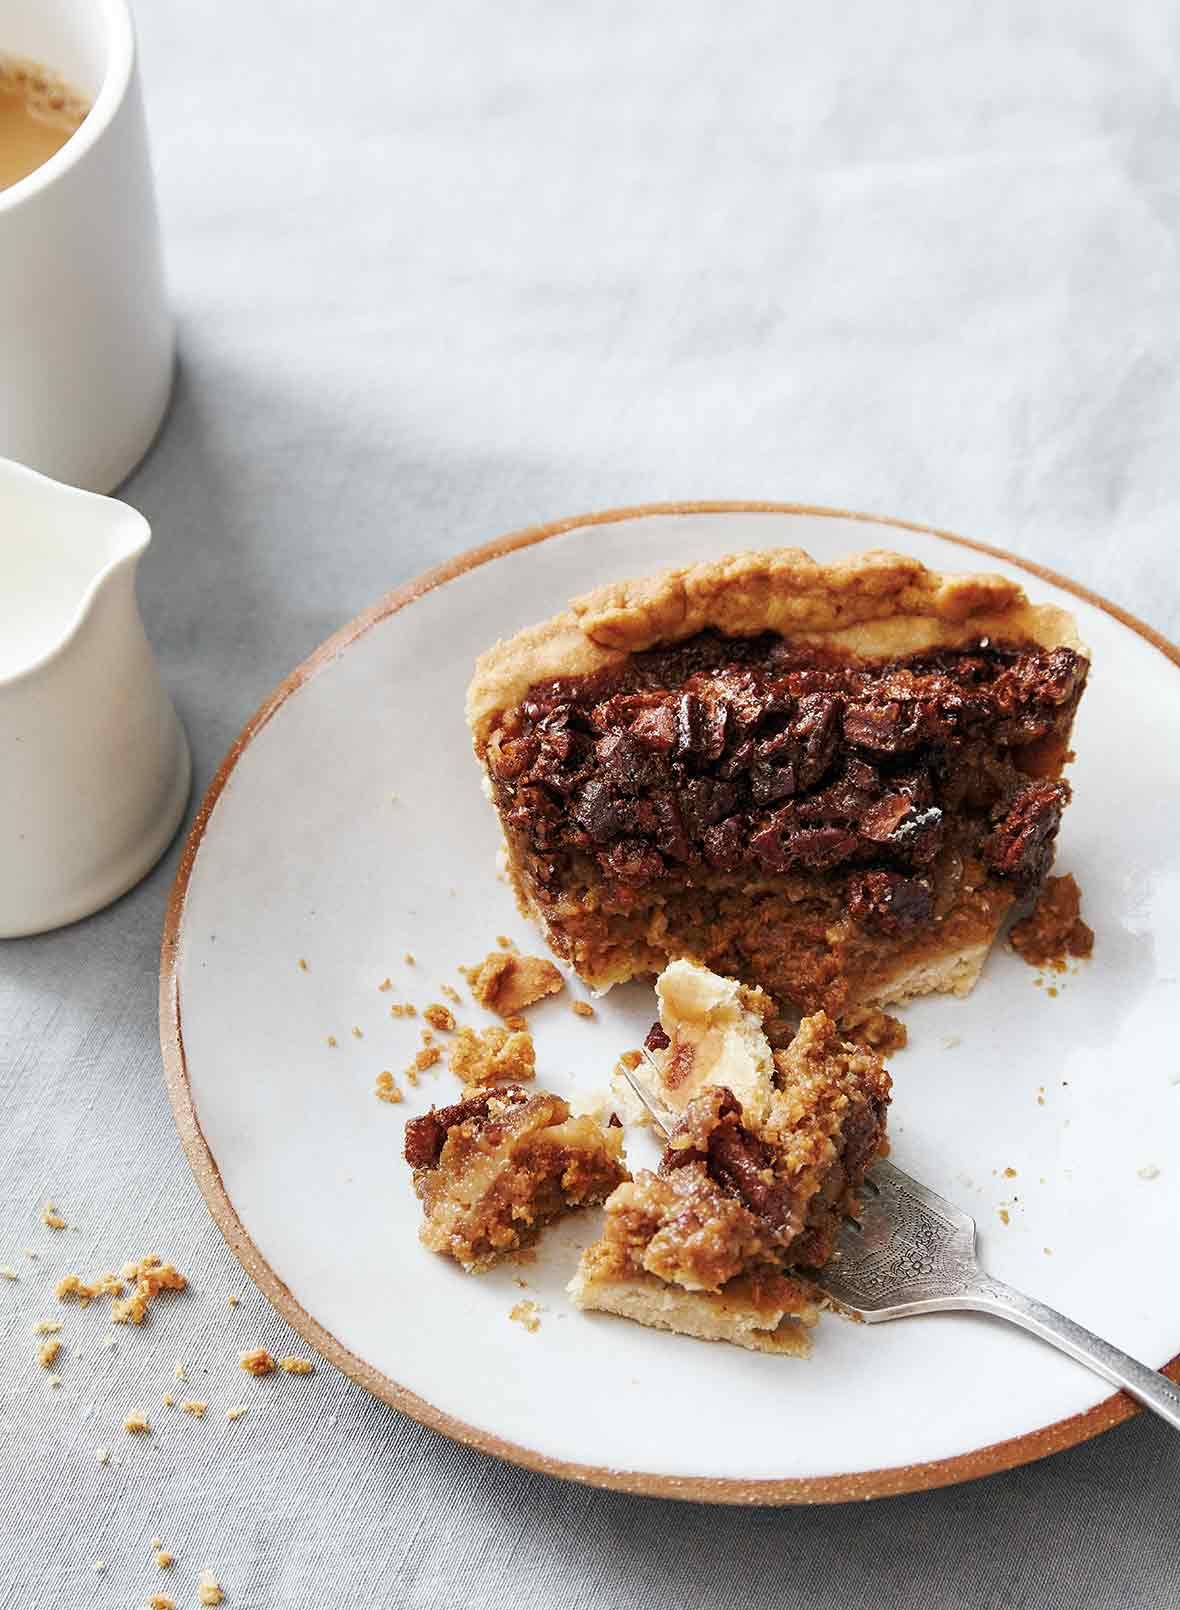 A slice of half-eaten pumpkin pecan pie on a gold rimmed plate